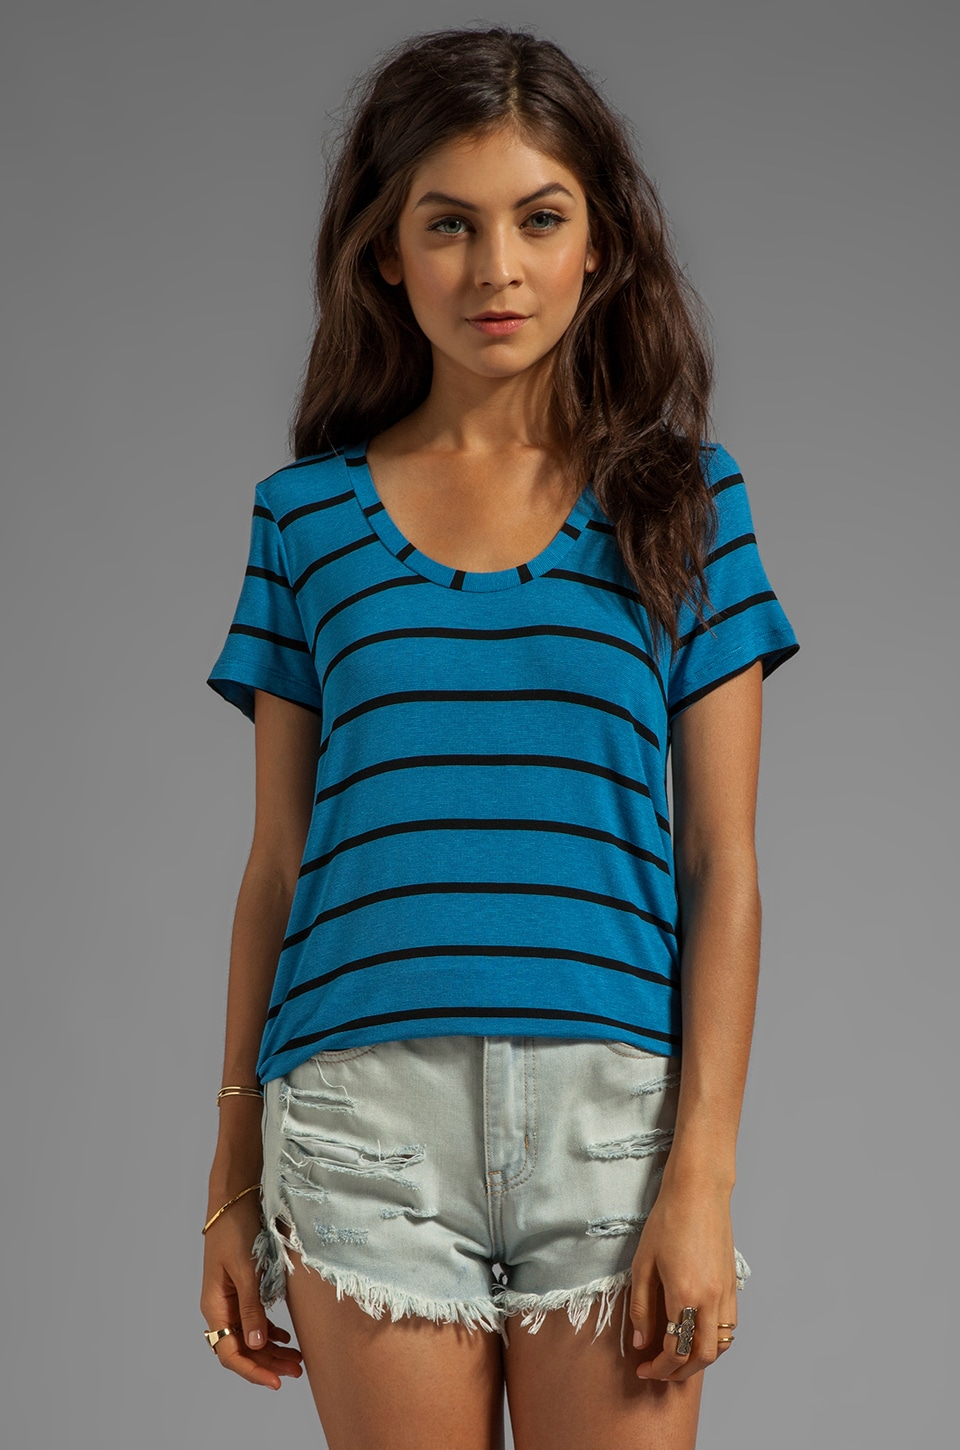 Splendid Brooklyn Striped Drapy Lux Short Sleeve in Bright Azure